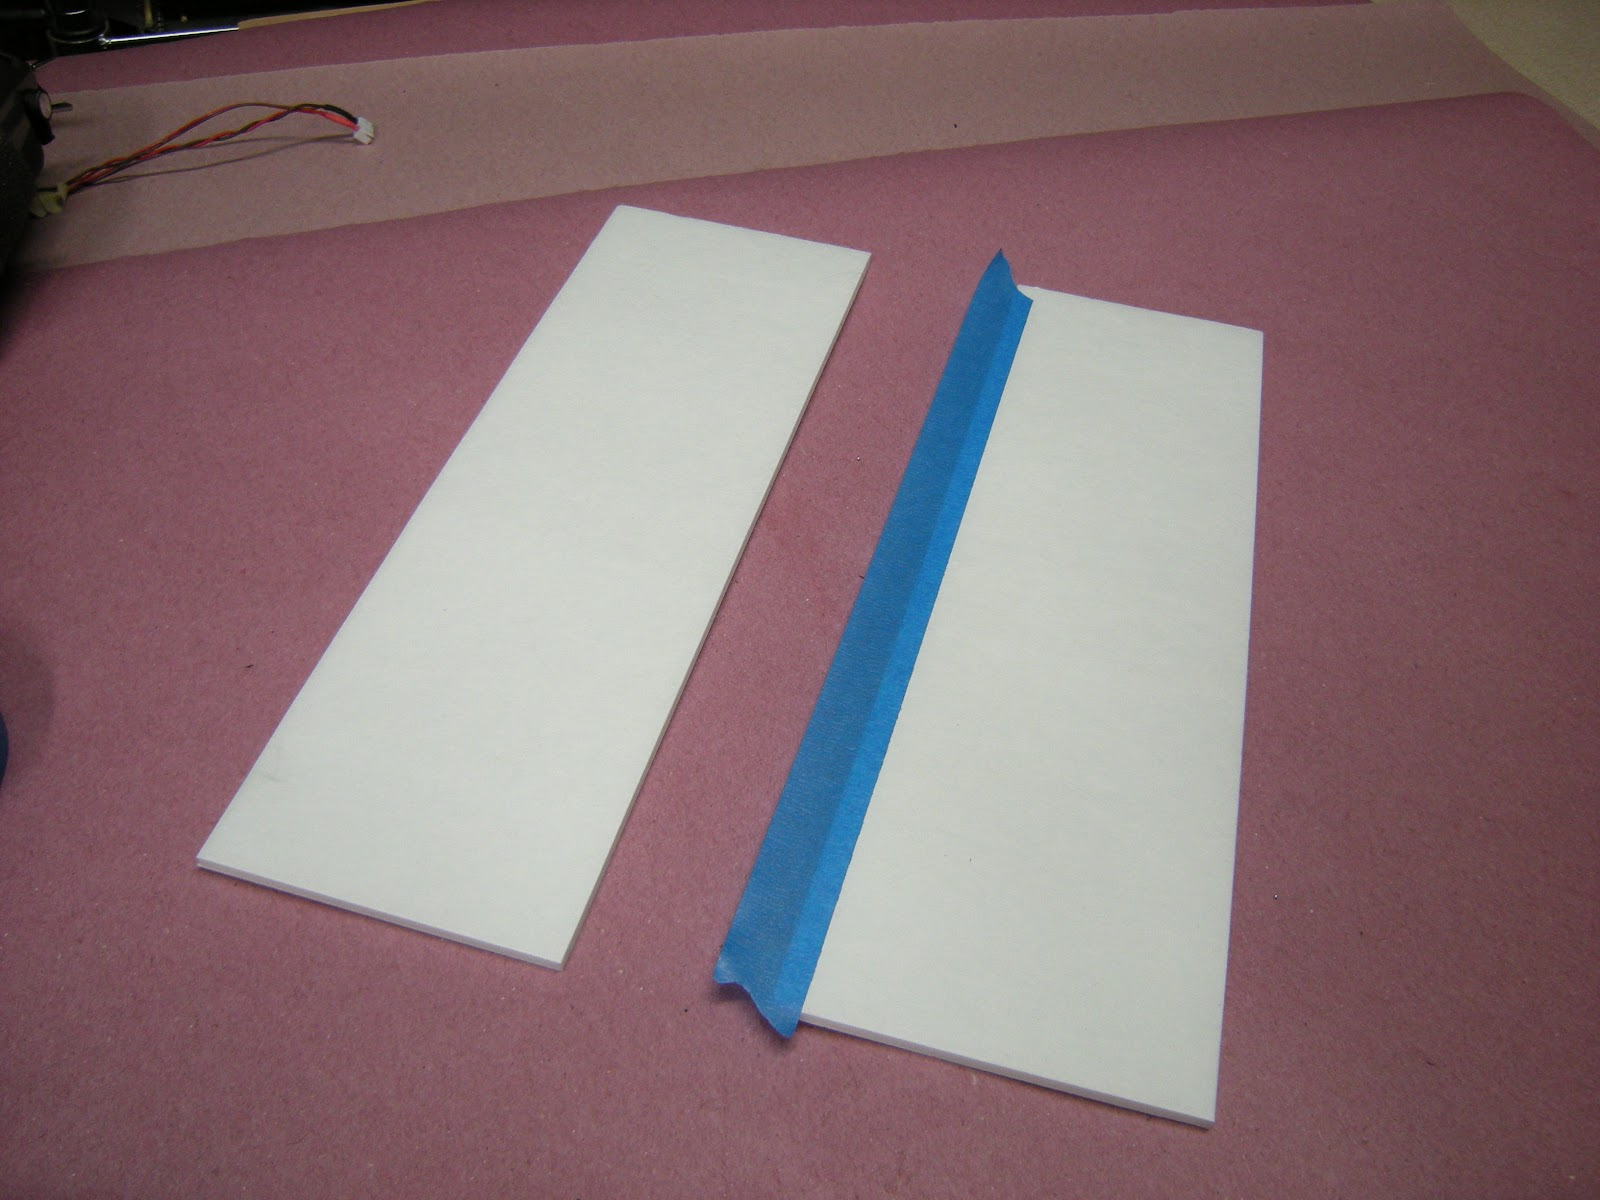 How to join foam interfacing